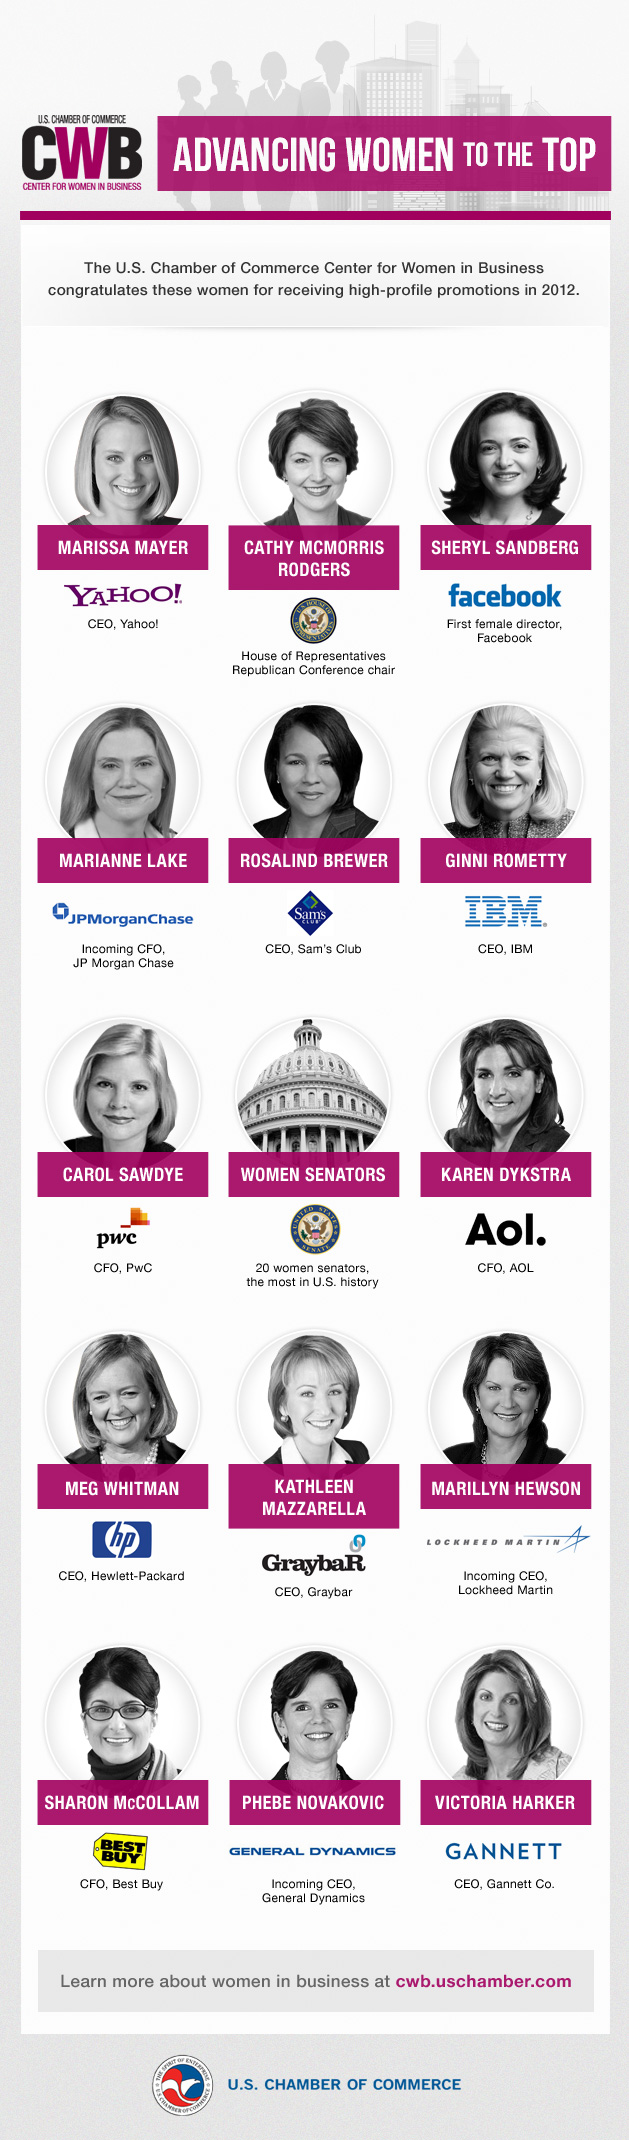 Center for Women in Business High Profile Hires in 2012